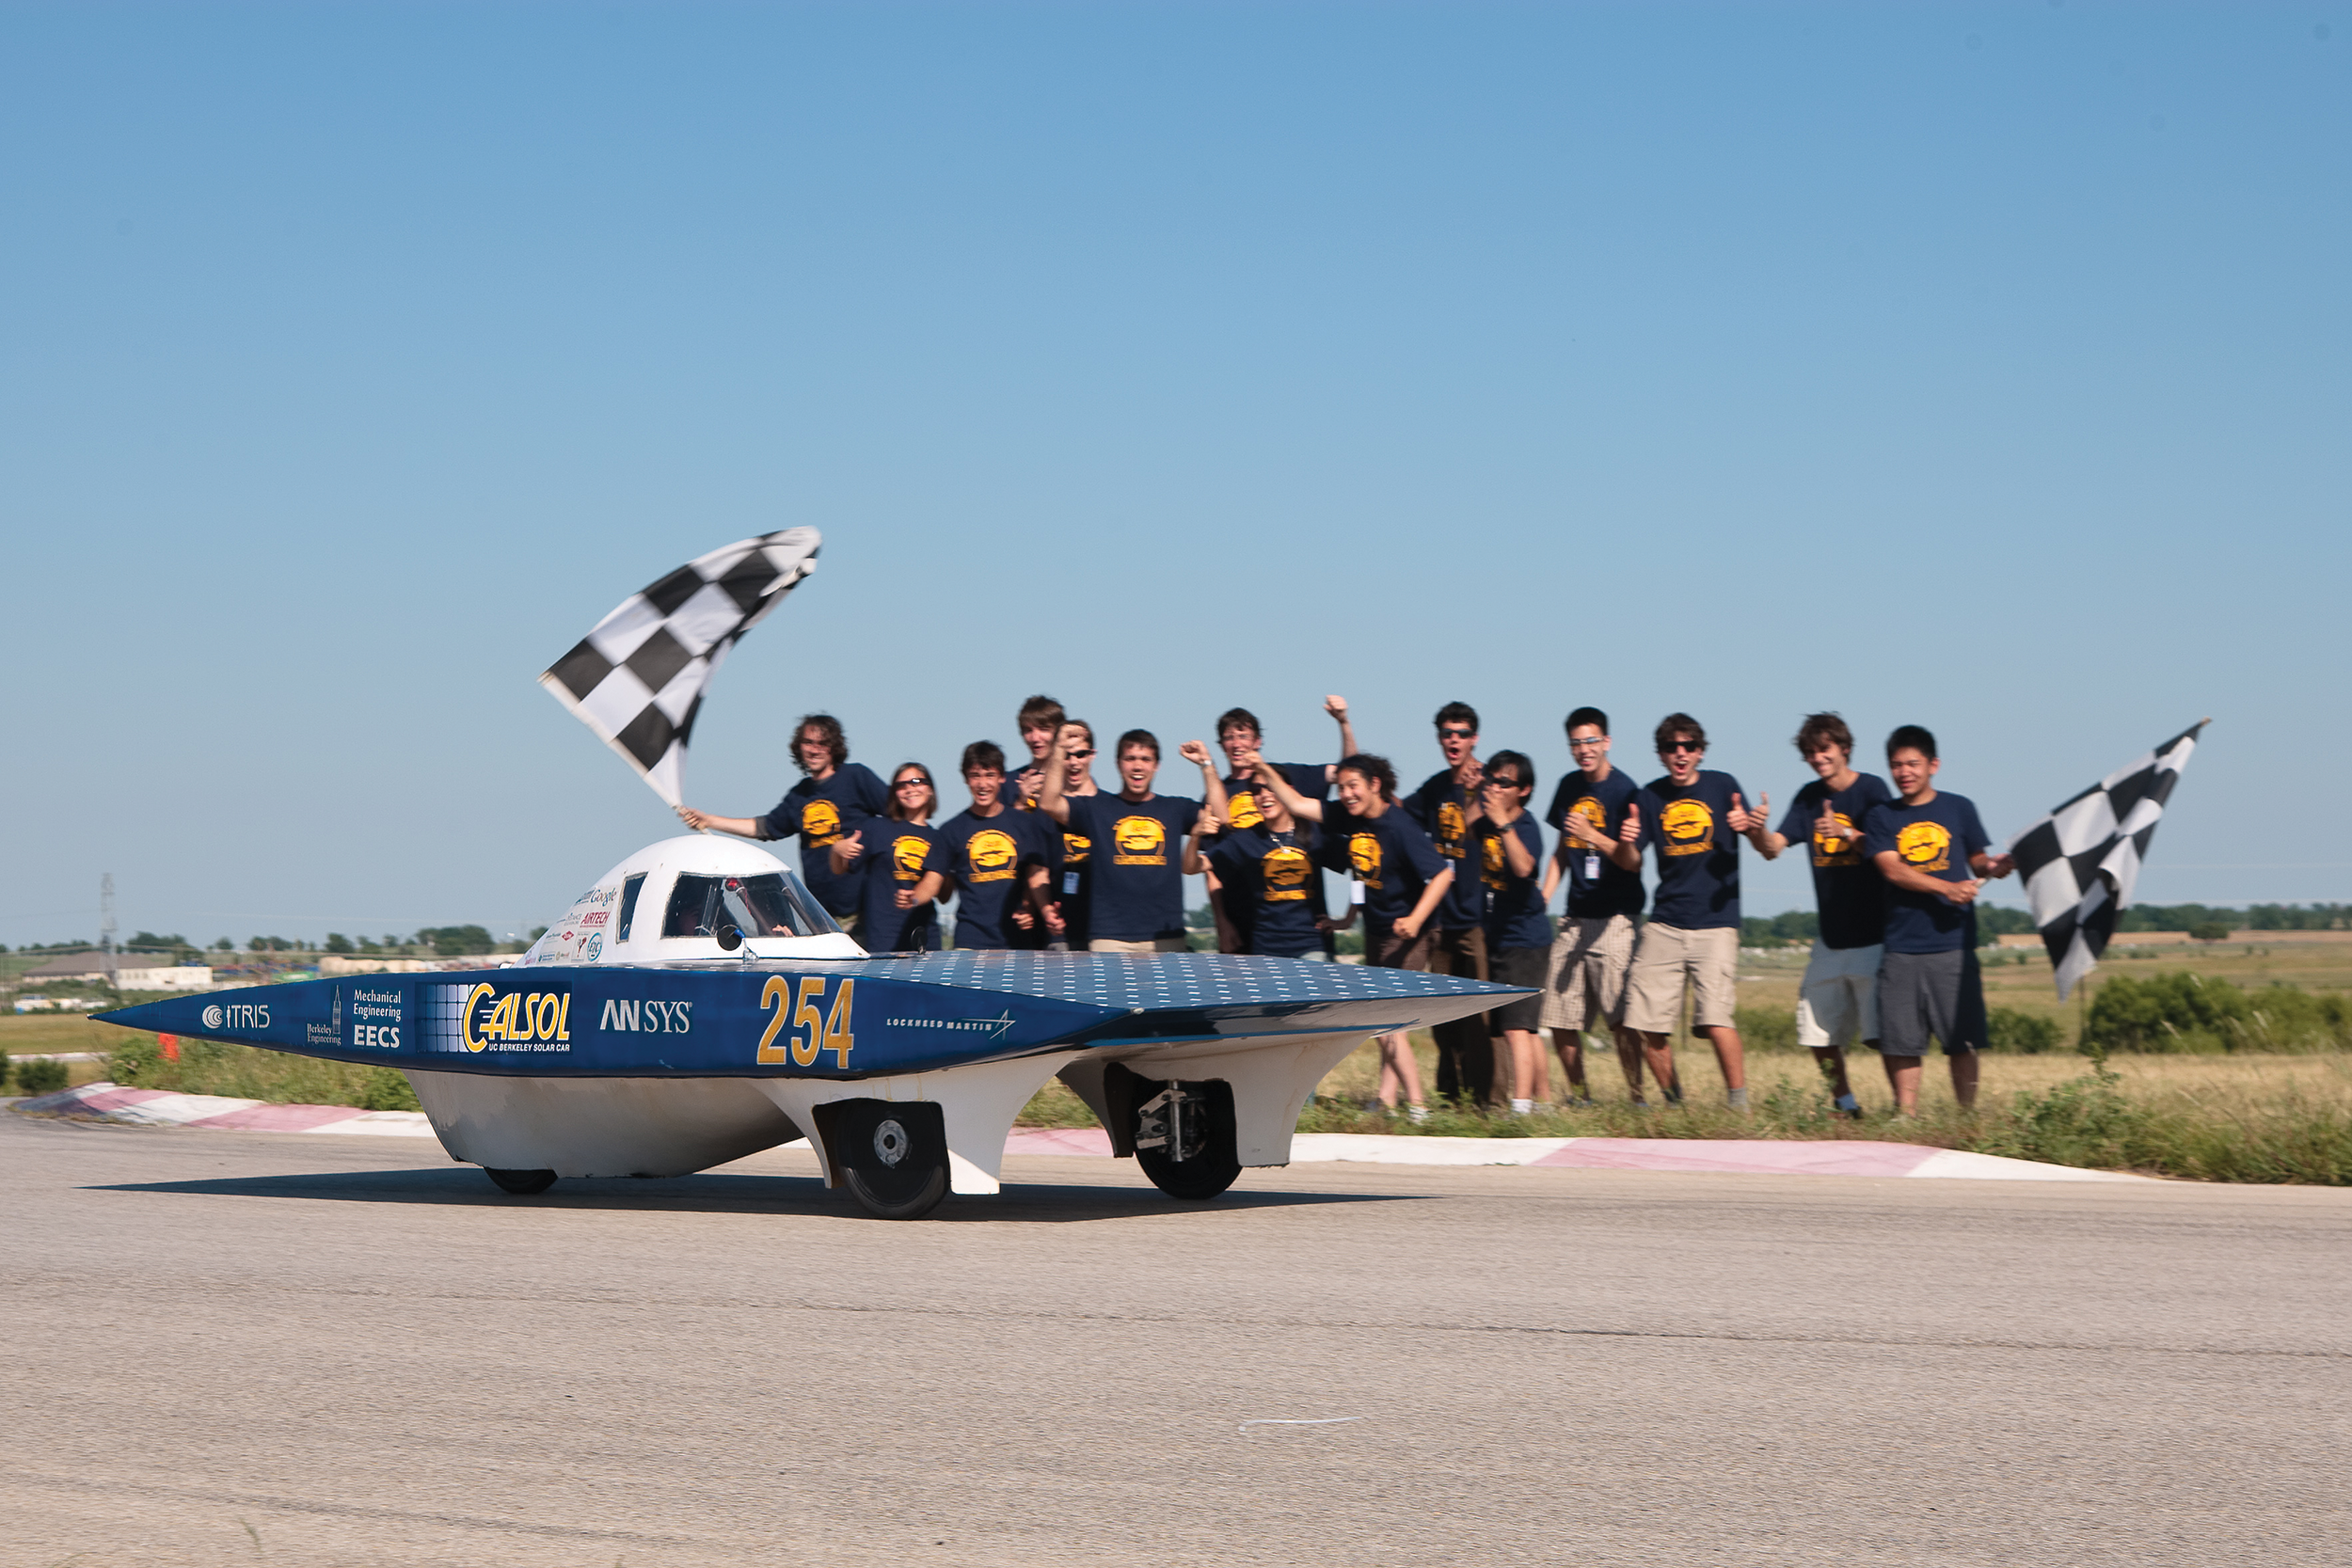 The group is cheering in front of one of its car inventions.